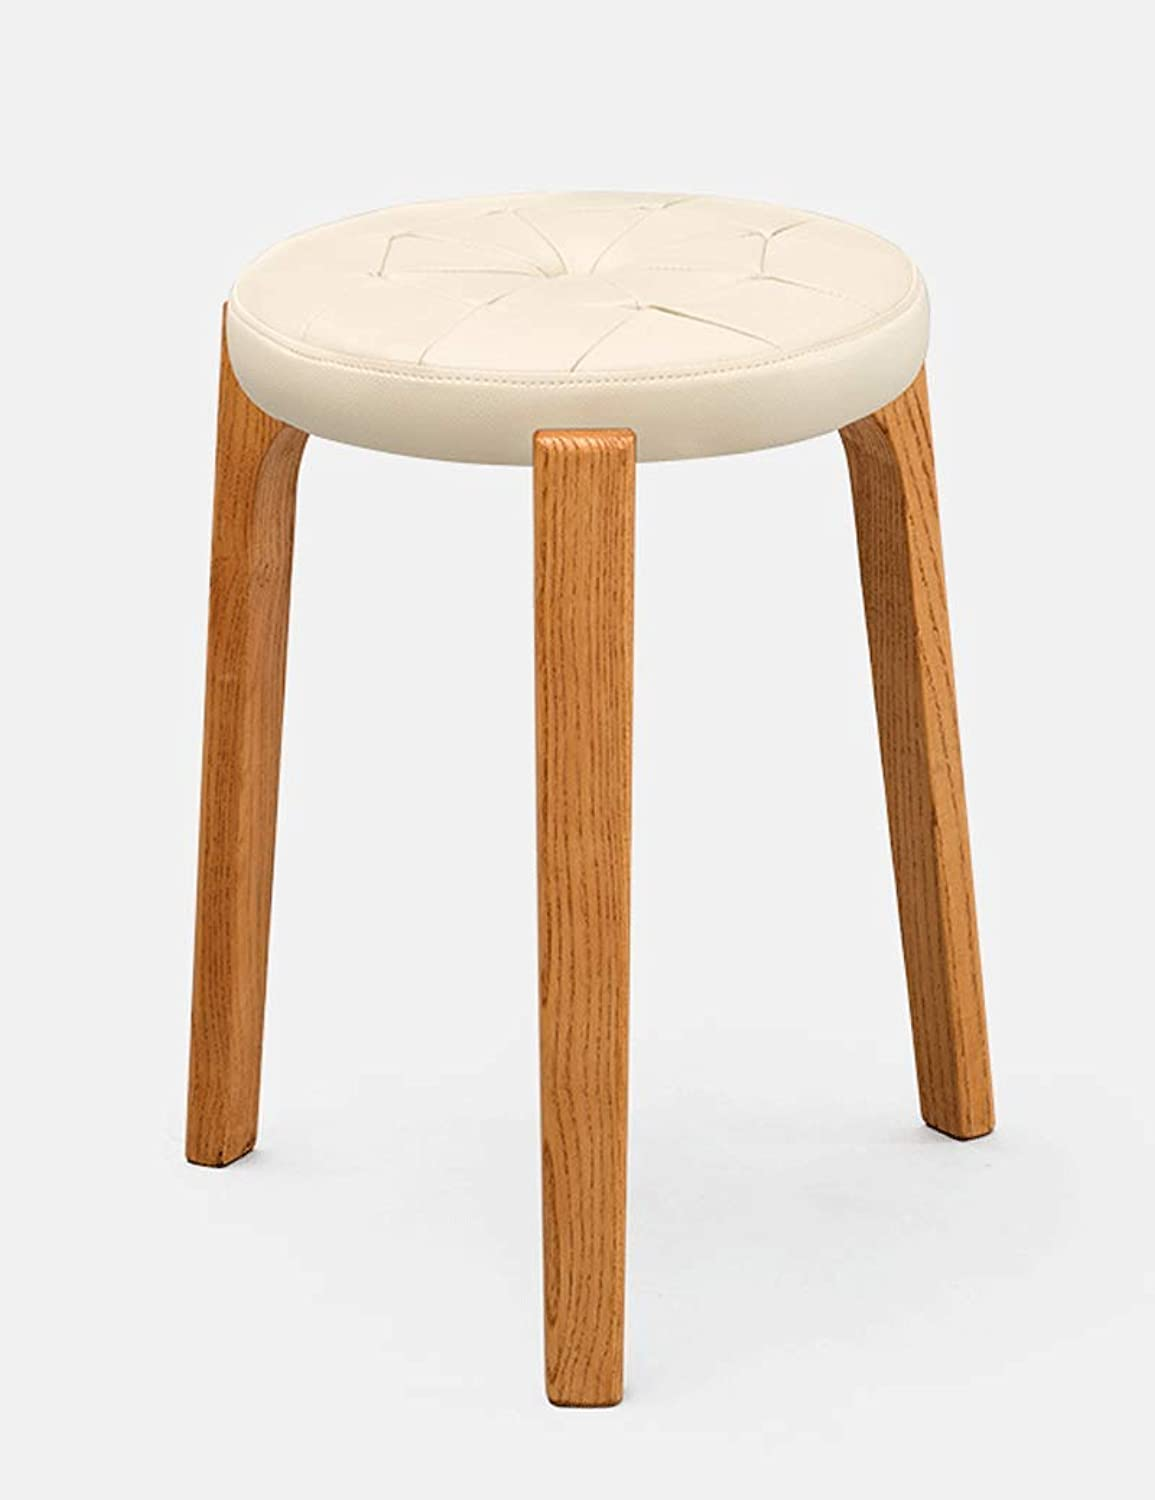 Creative Stool Solid Wood Dining Stool Fabric Dressing Stool Simple Fashion Makeup Stool Bench Home Stool (color   B)